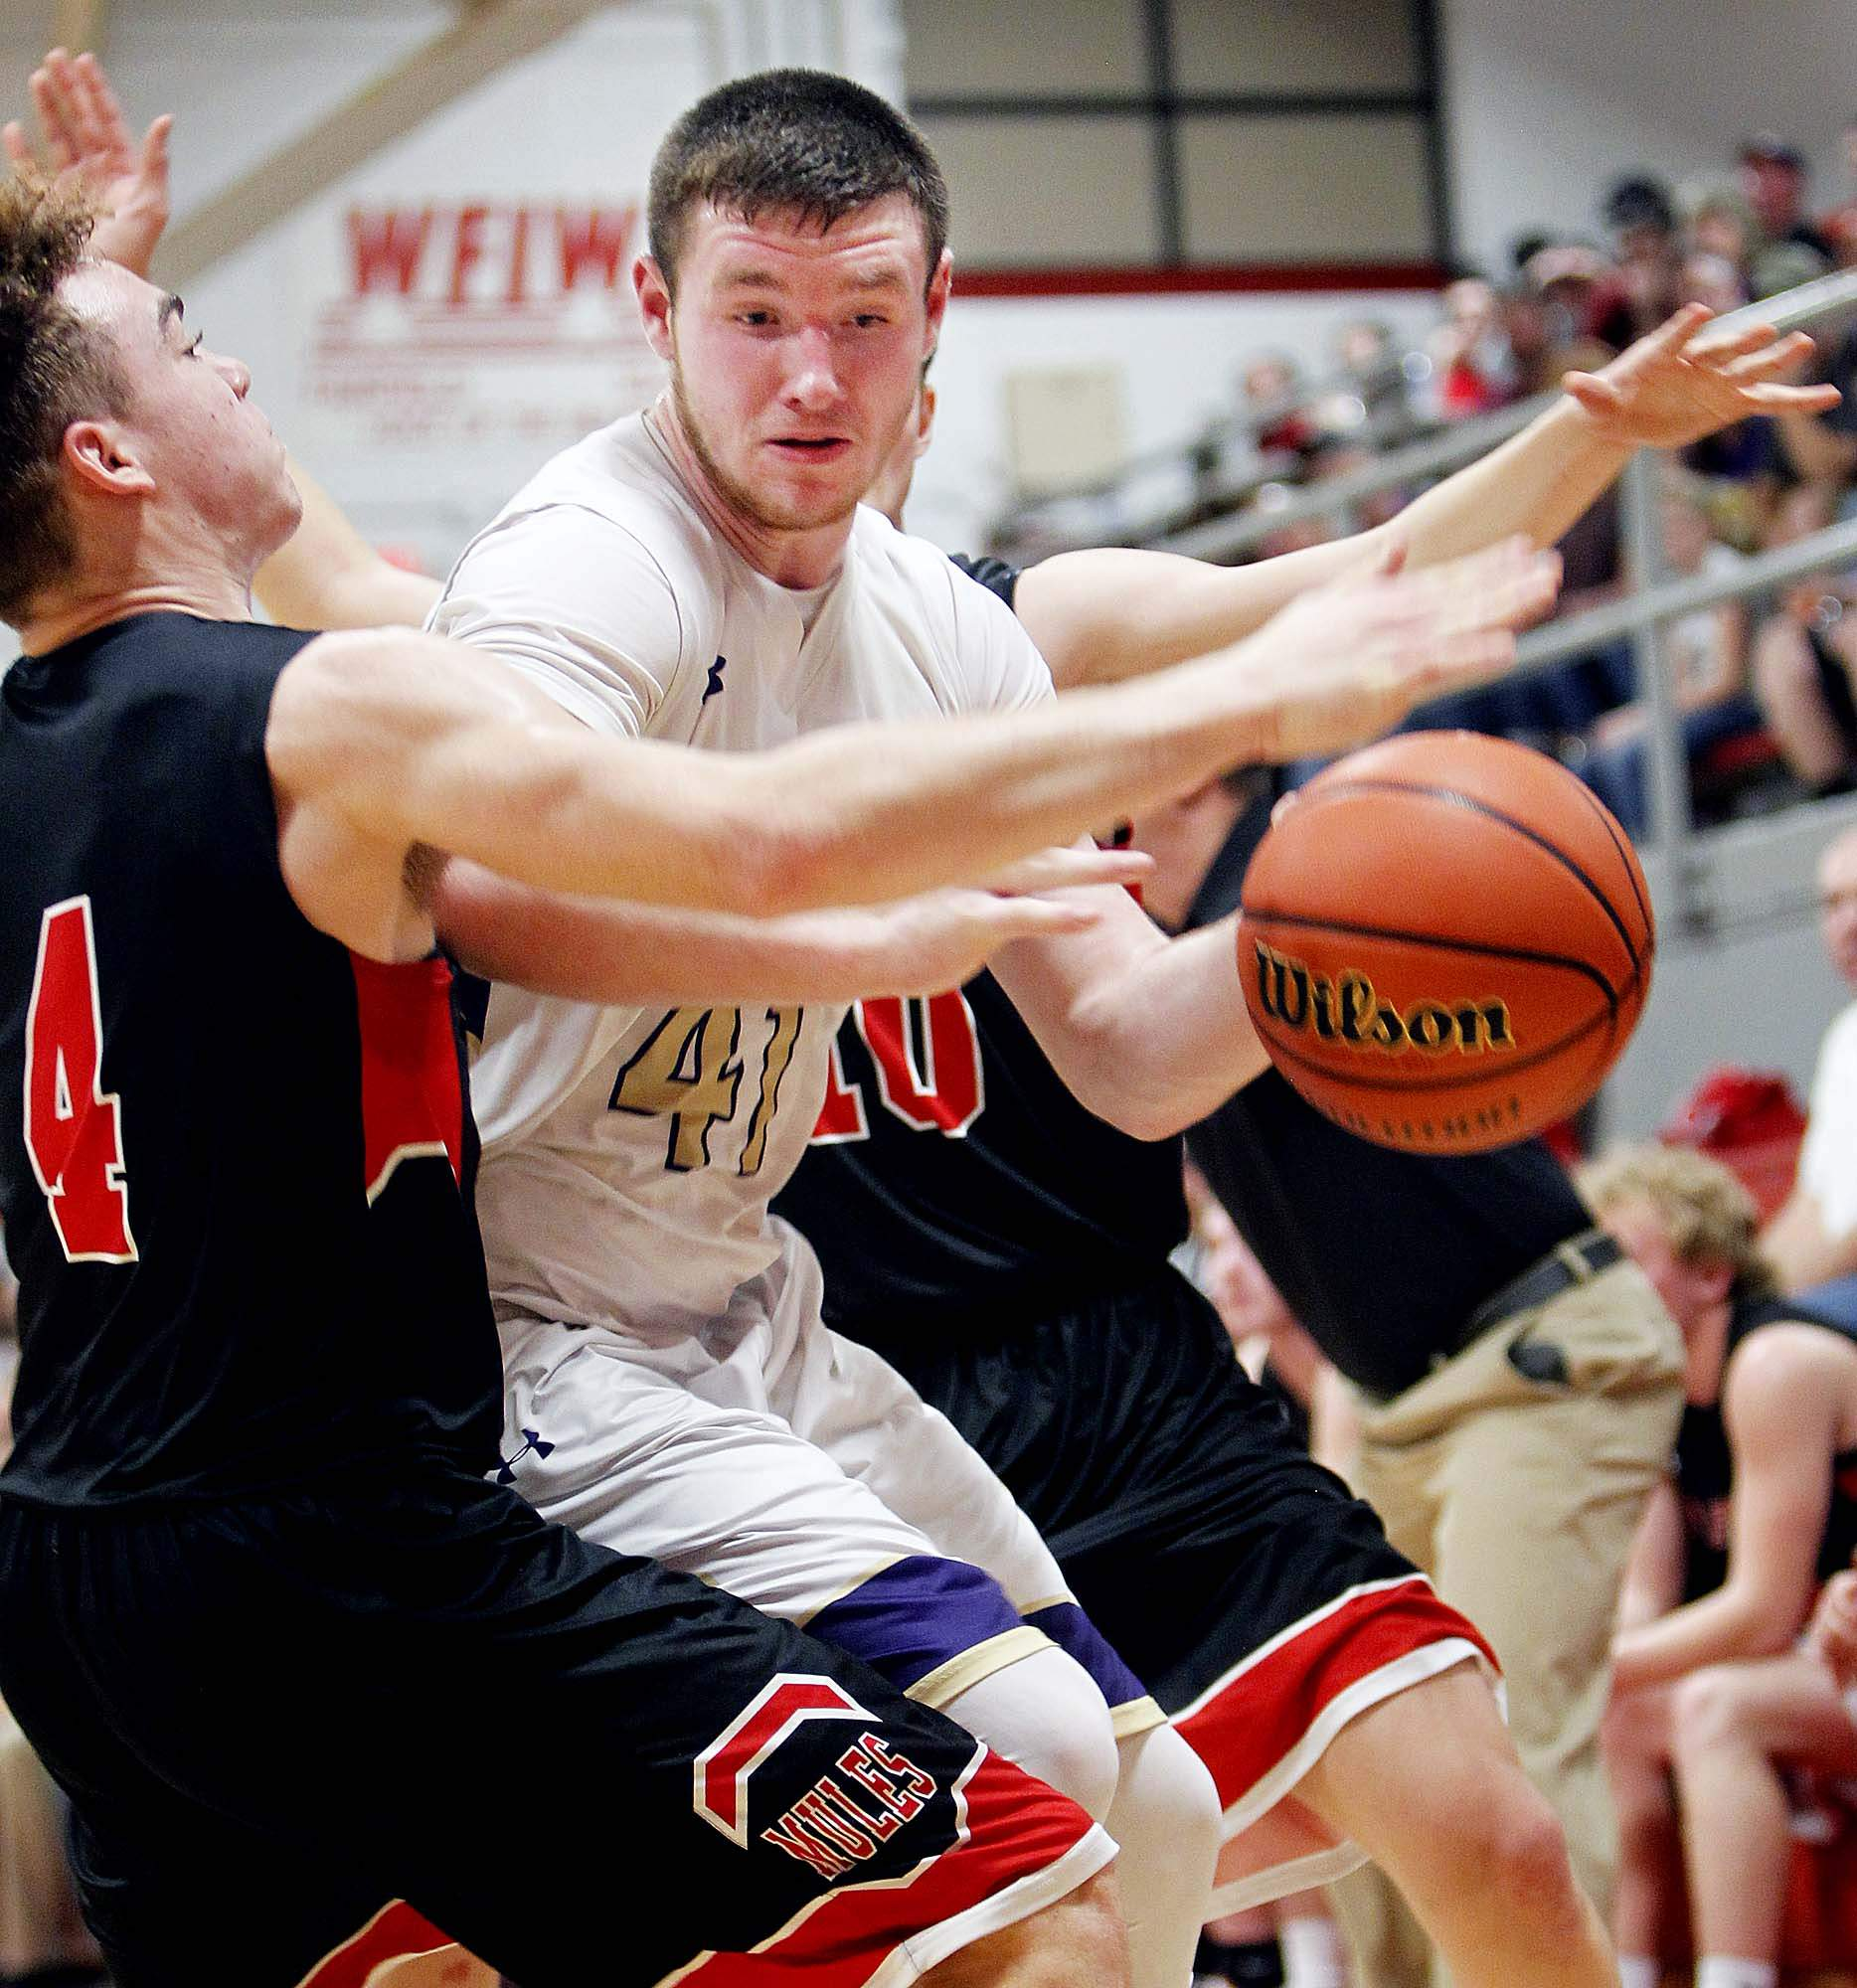 Braden Attebury had a career-high 29 points in Eldorado's 71-57 win over Fairfield during Tuesday's IHSA Class 2A Regional Semifinal at Fairfield High School. Attebury had 20 second half points in helping the Eagles back to the regional title game for a second straight season.